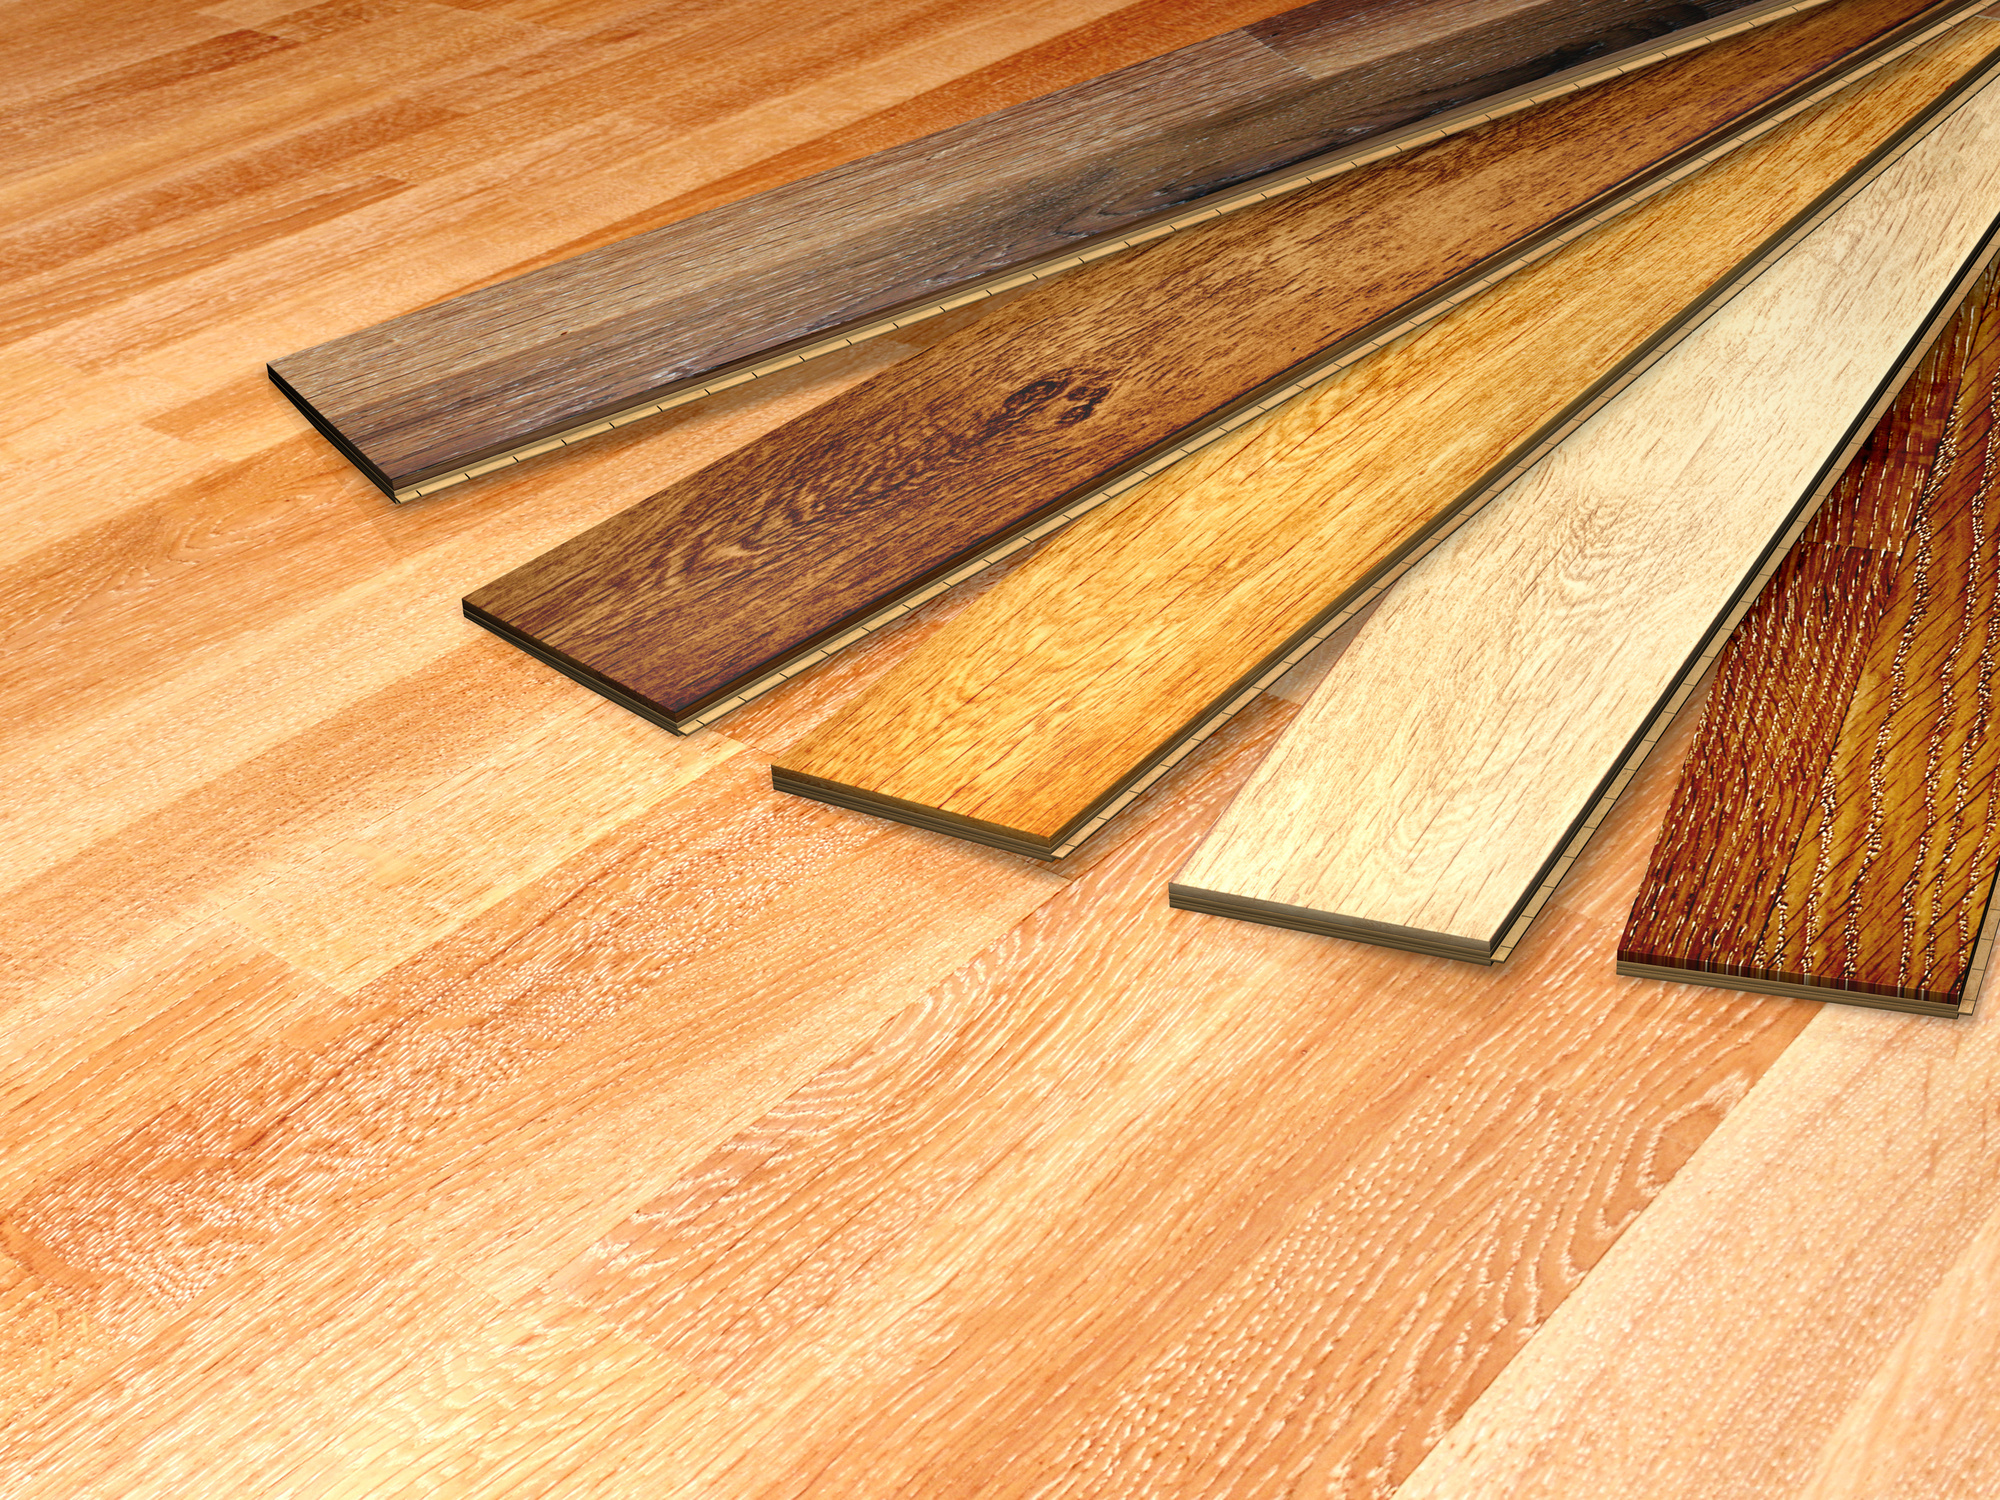 2018 Trends in Wood Colors for Hardwood Floors